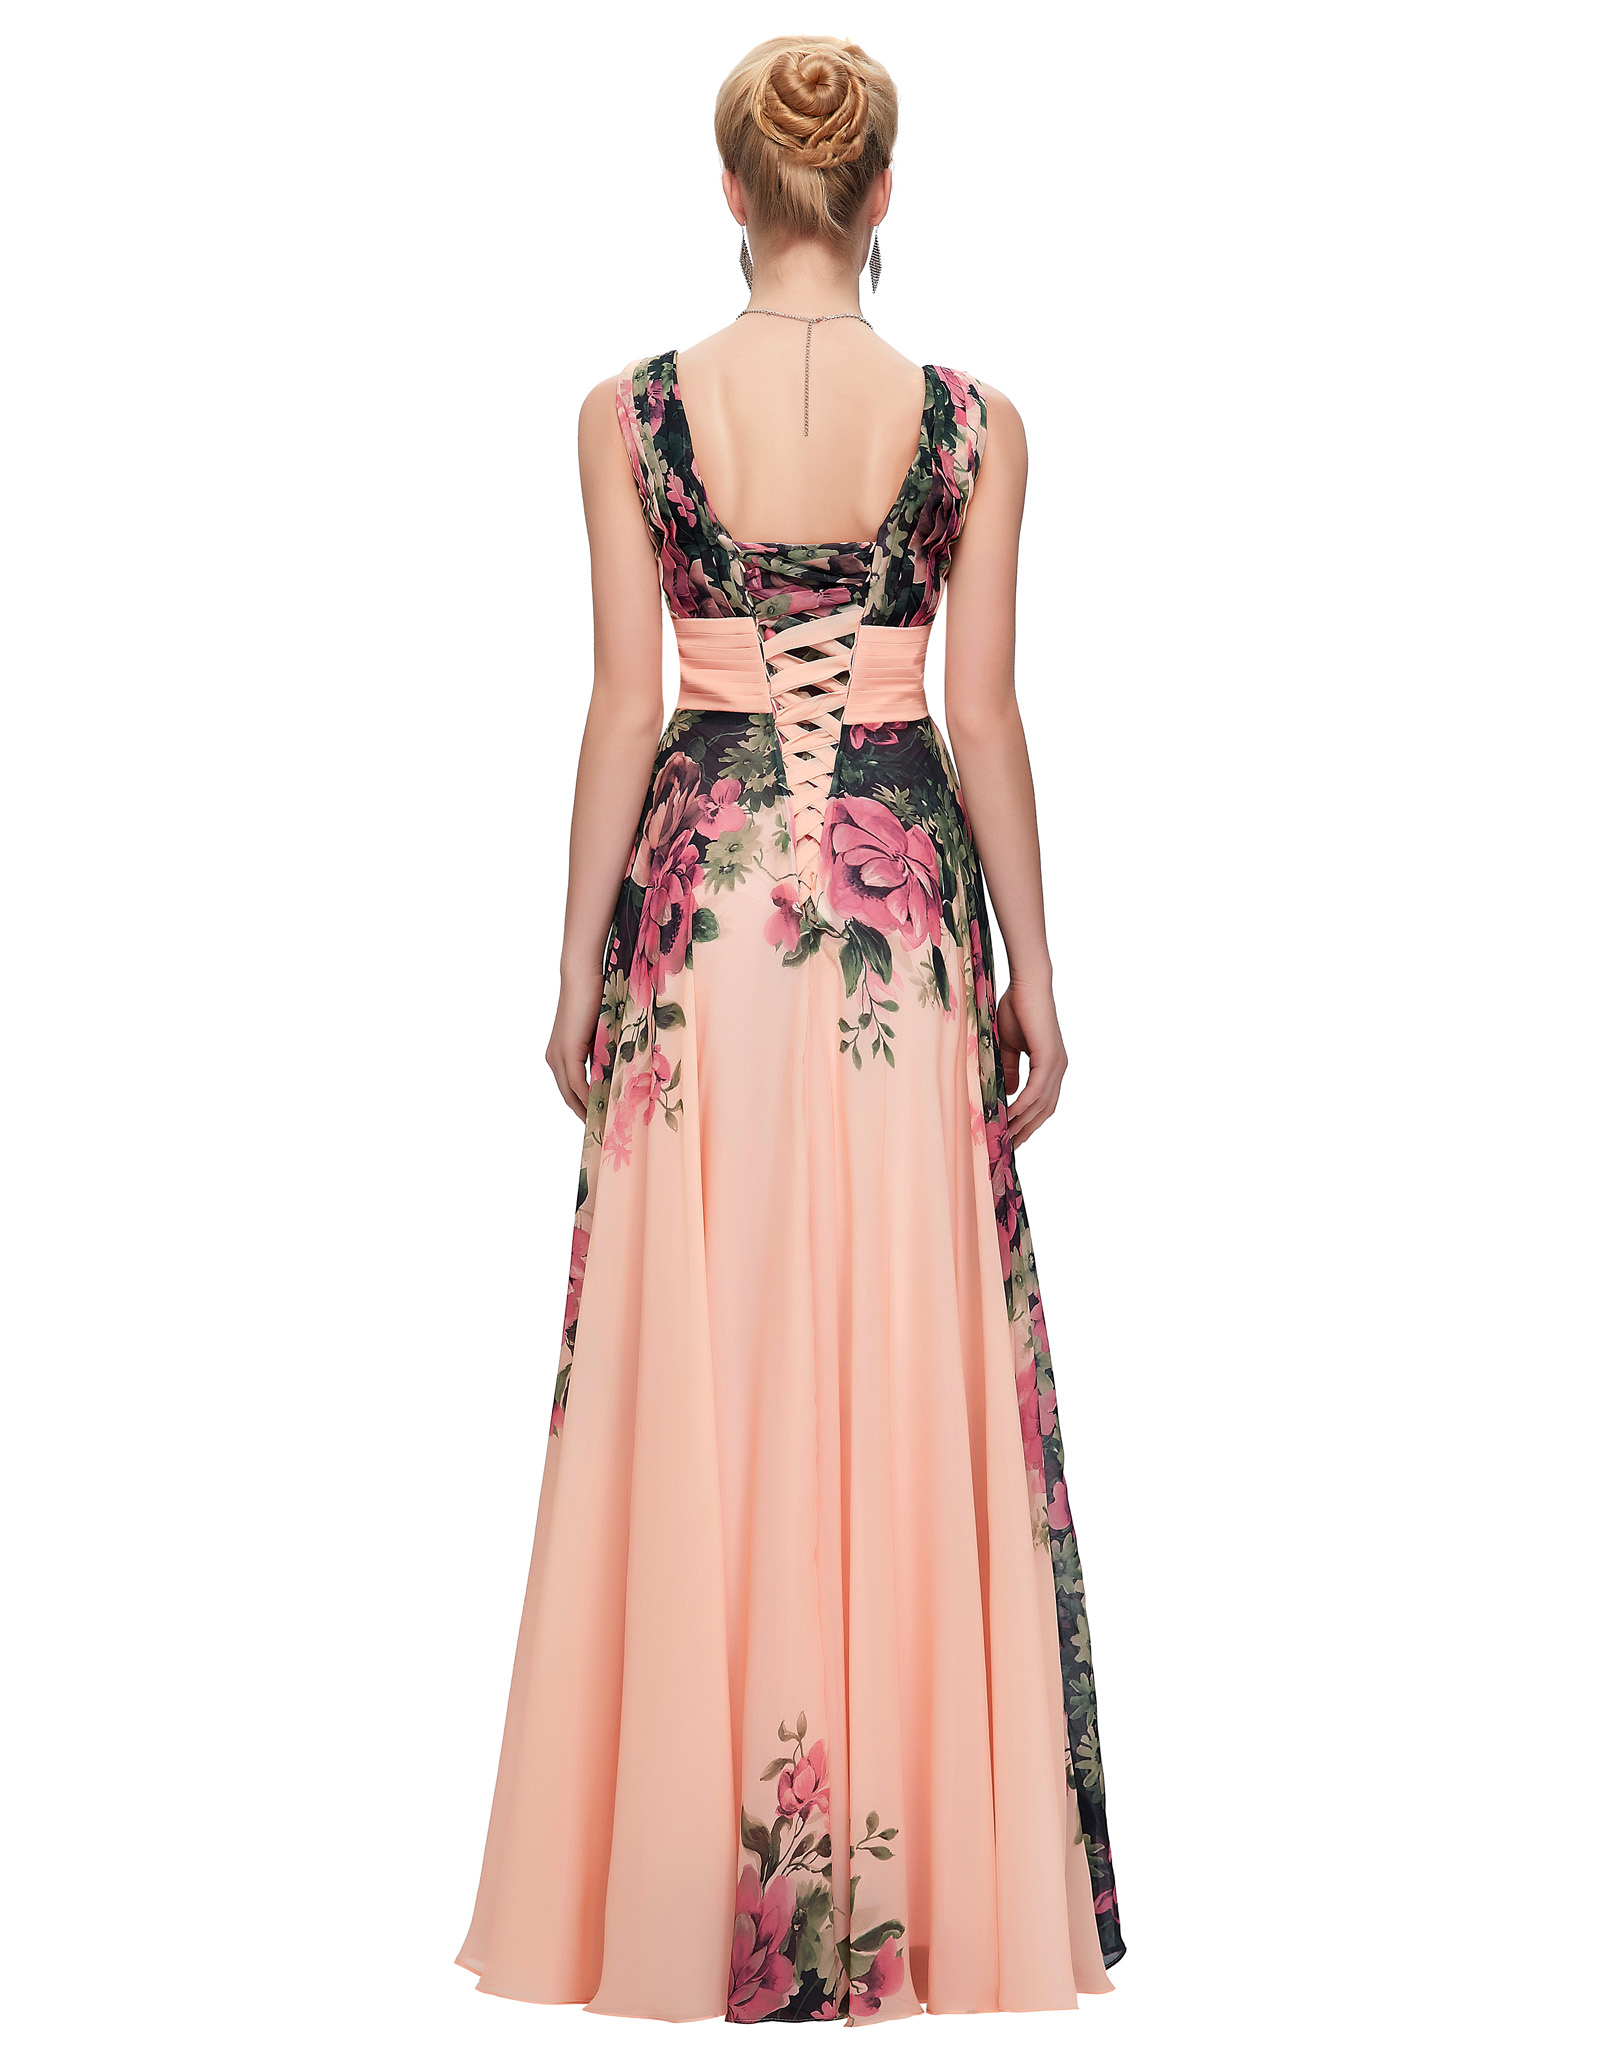 2481344e5107 Nobility Floral Wedding/Evening/Party/Prom Formal Long Dress Gown Plus Size  Hot